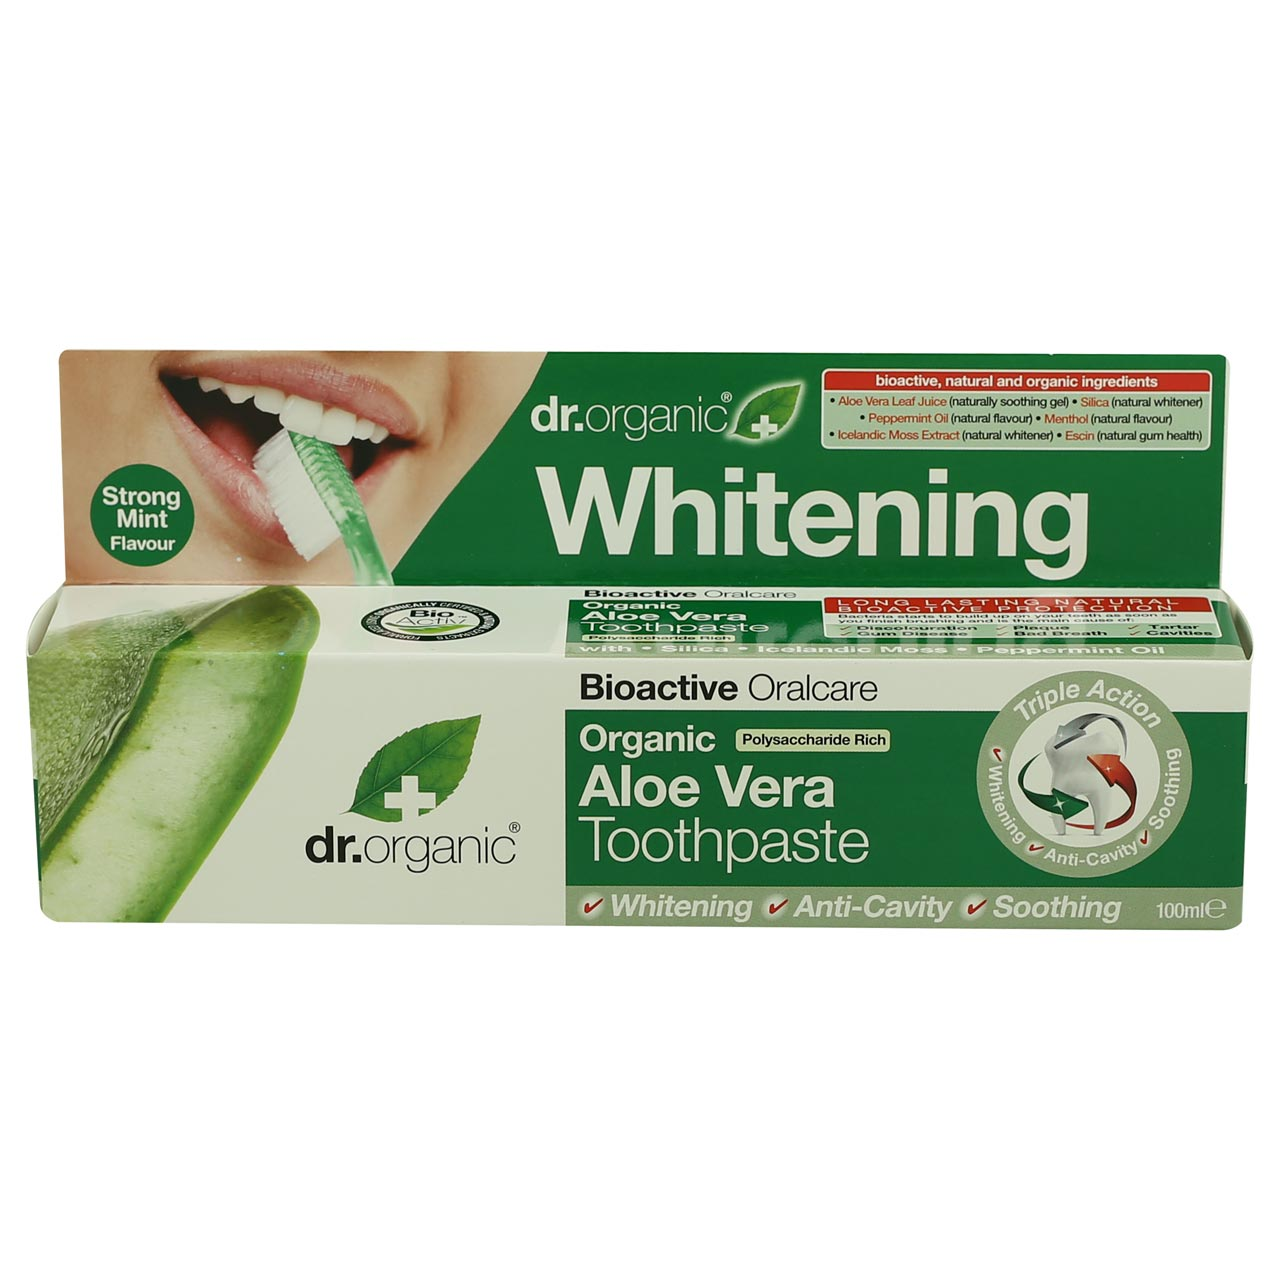 Dr Organic Toothpaste -Whitening with Aloe Vera